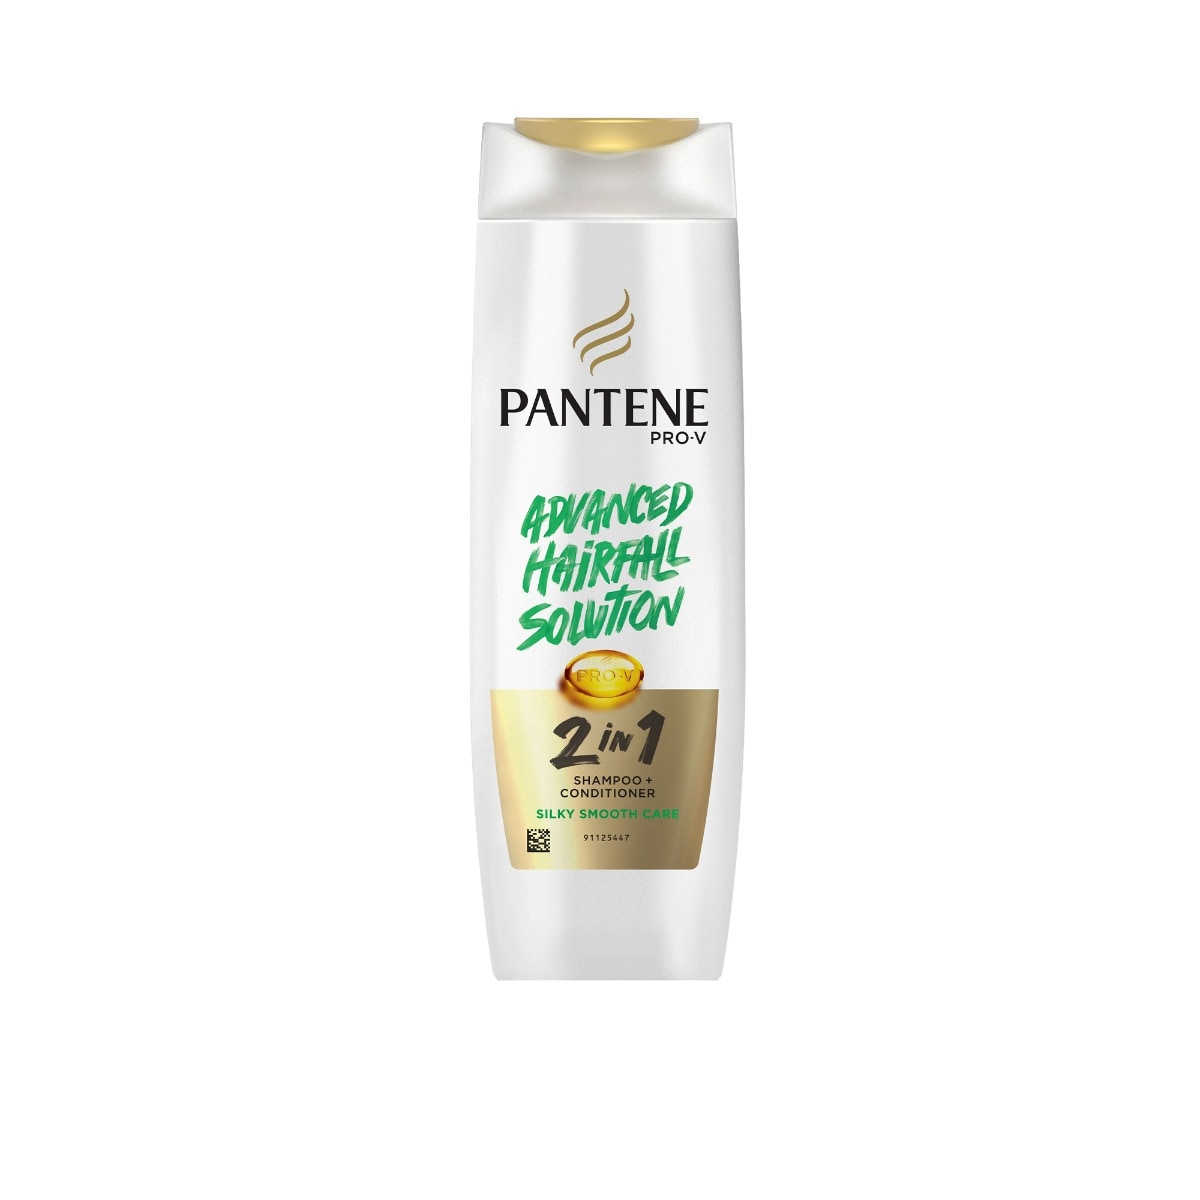 Pantene Pro-V 2 In 1 Silky Smooth Care Shampoo + Conditioner, 180 ml